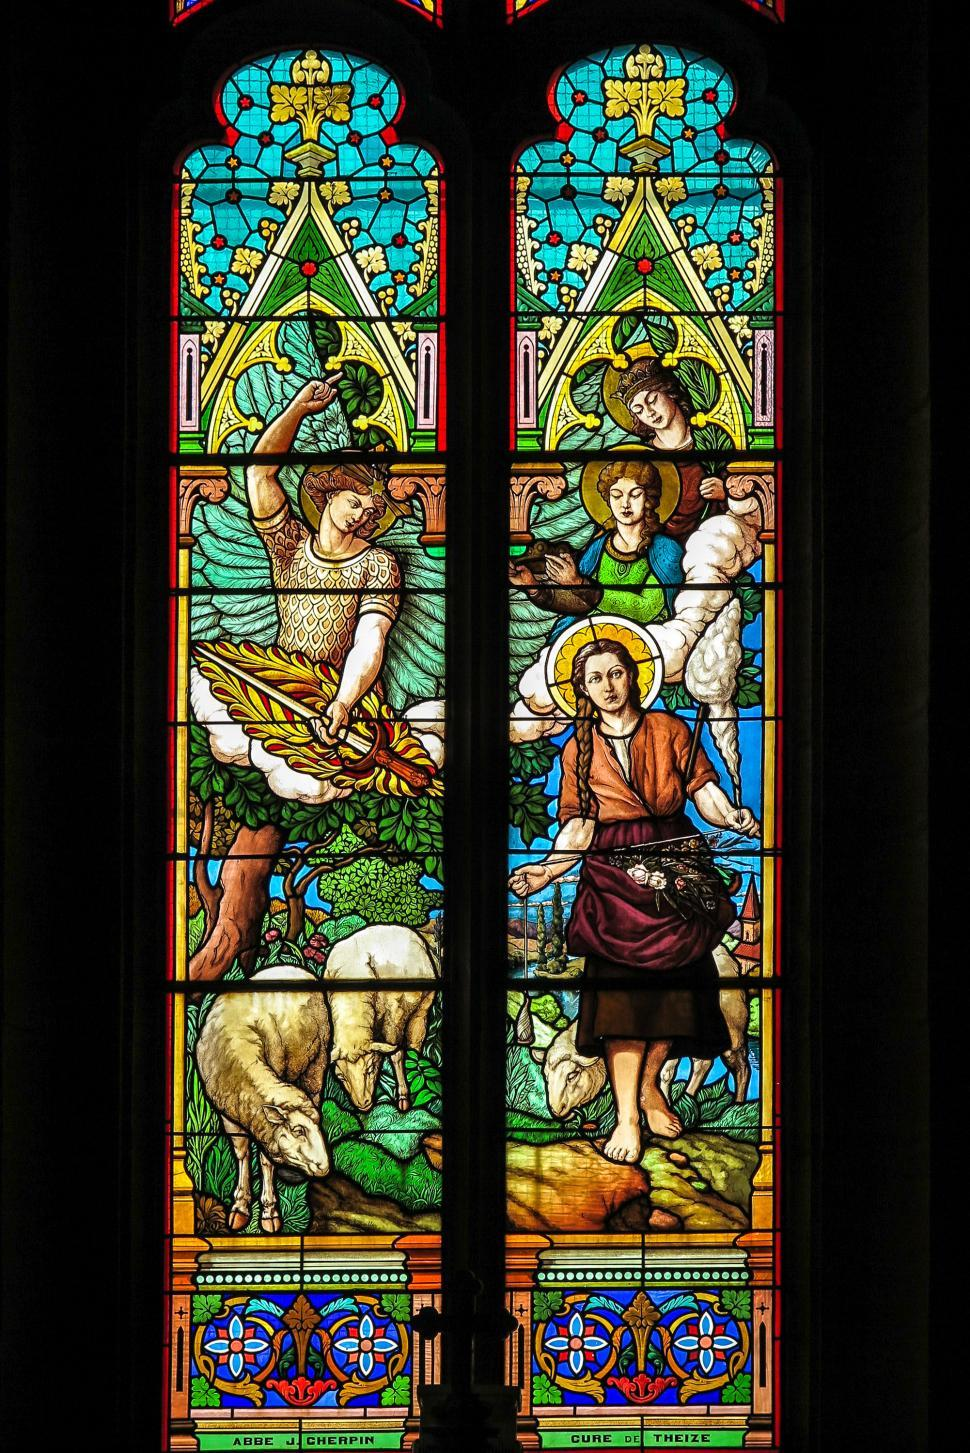 Download Free Stock HD Photo of Pastoral stained glass scene Online